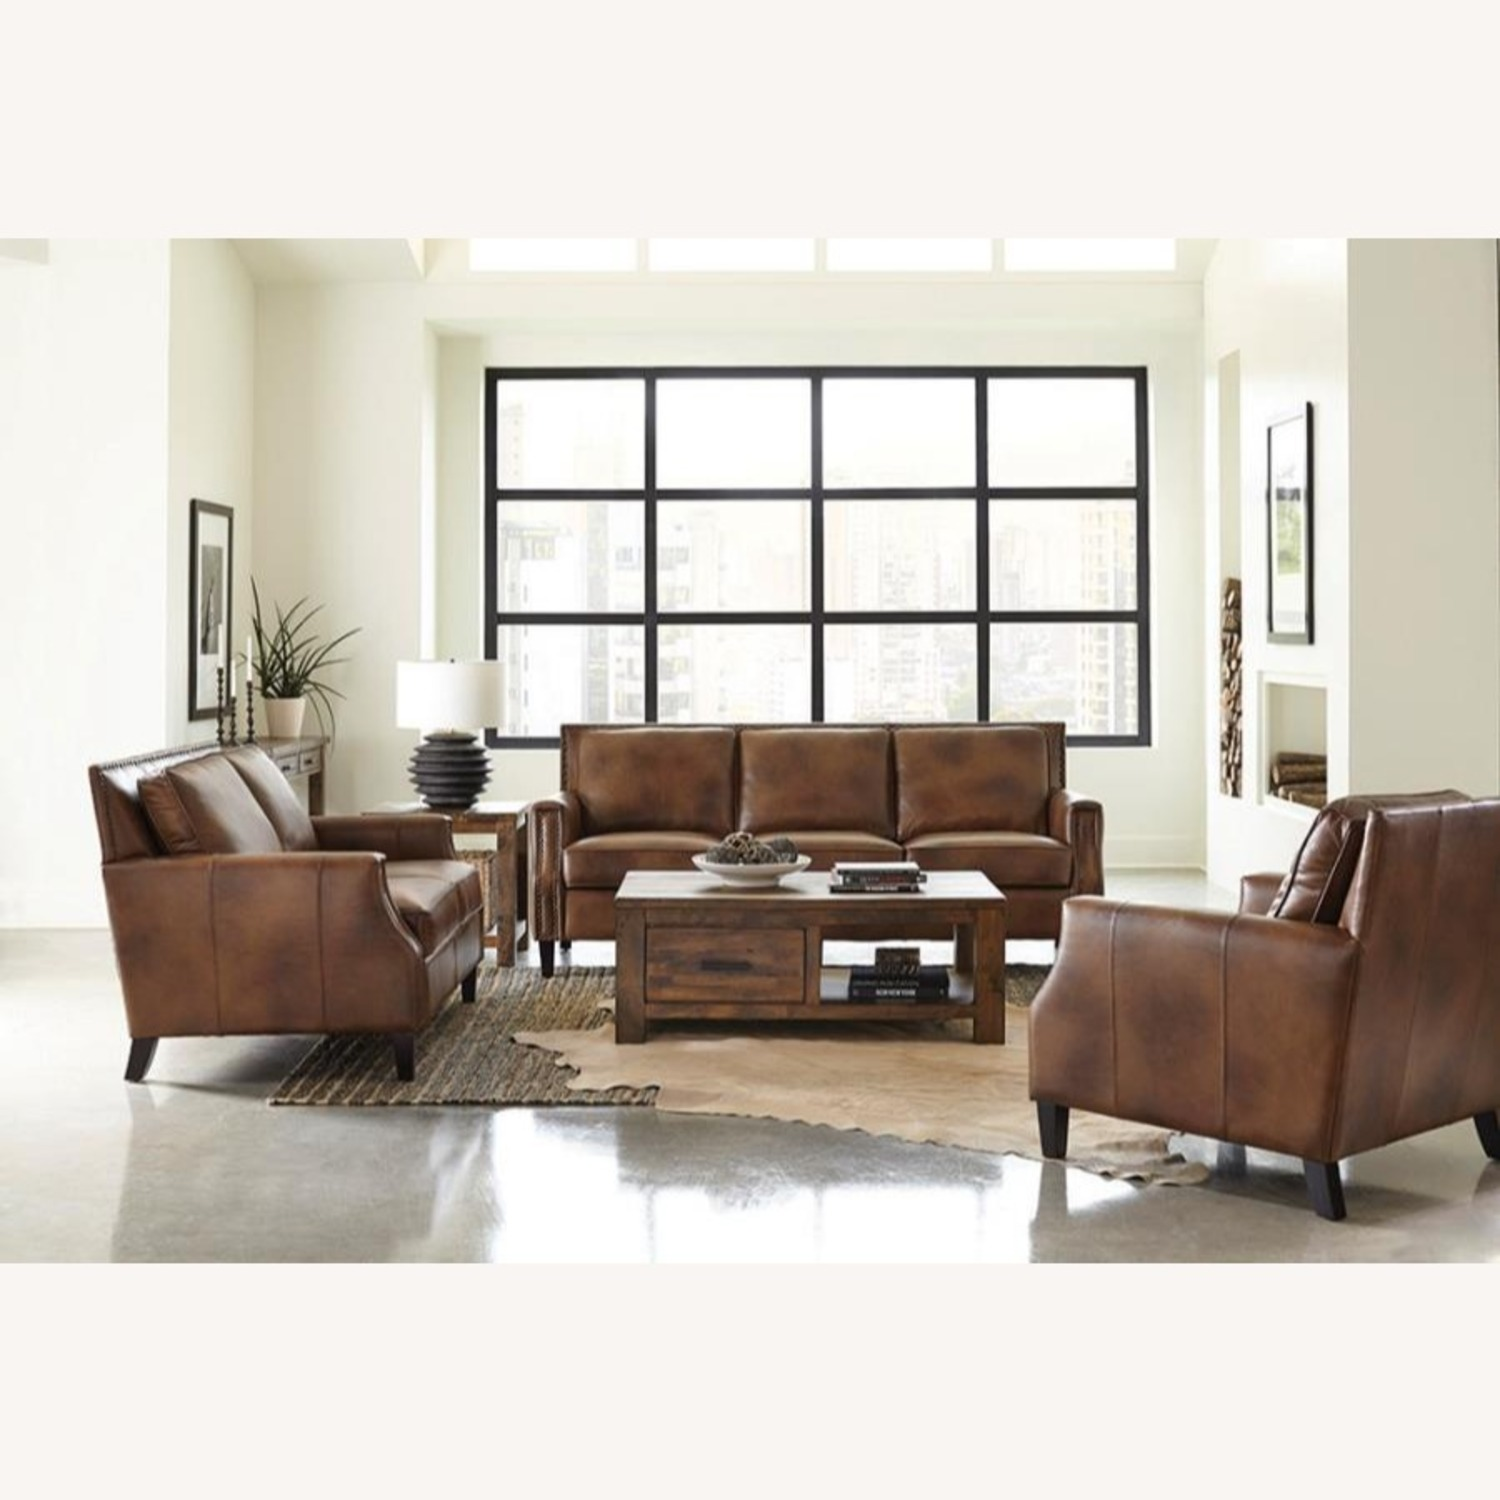 Loveseat In Brown Sugar Leather Upholstery - image-2